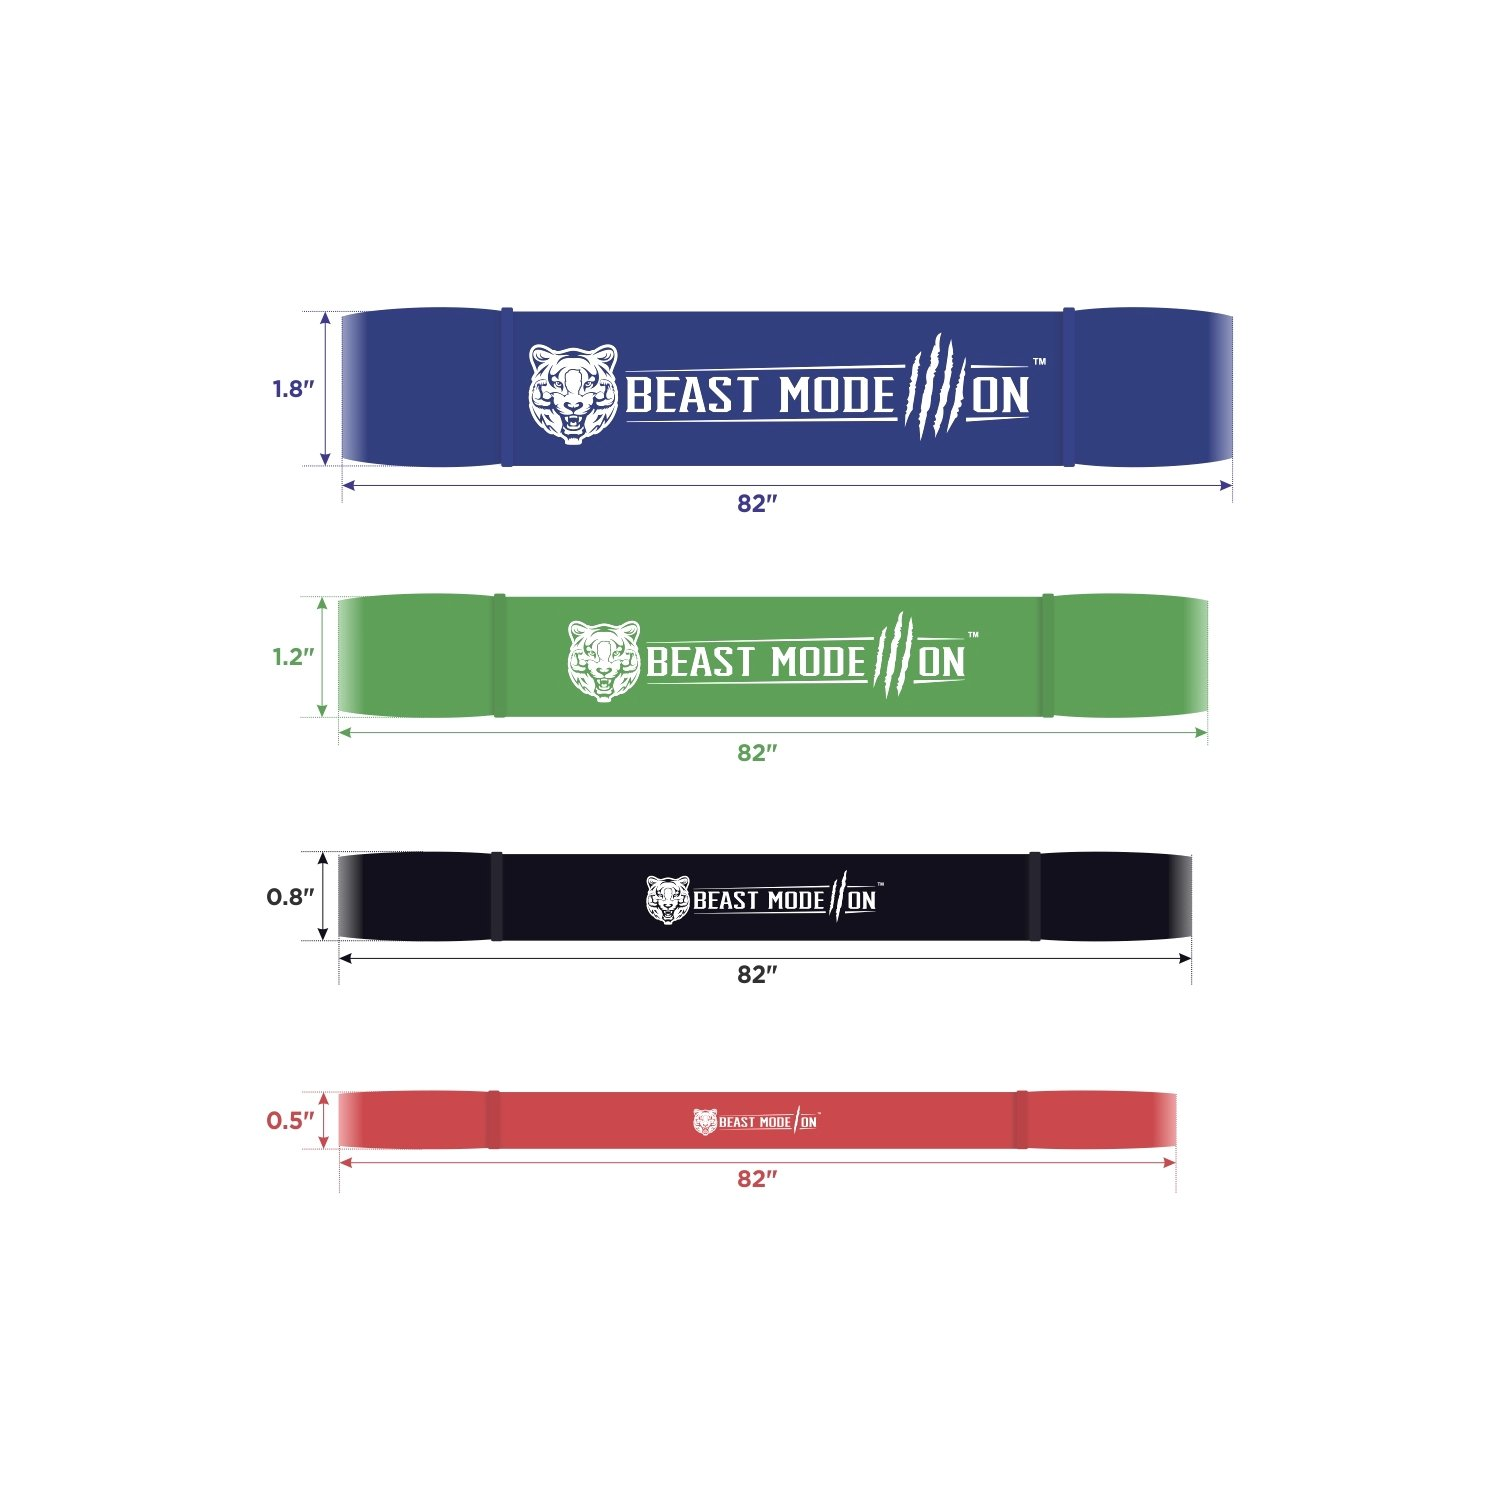 Resistance Bands for Pull ups Stretching Resistance Exercise BEAST MODE ON Premium Pull up Bands Single Band or Set of 4 Bands Pull up Assistance Bands Free e-Guide Included